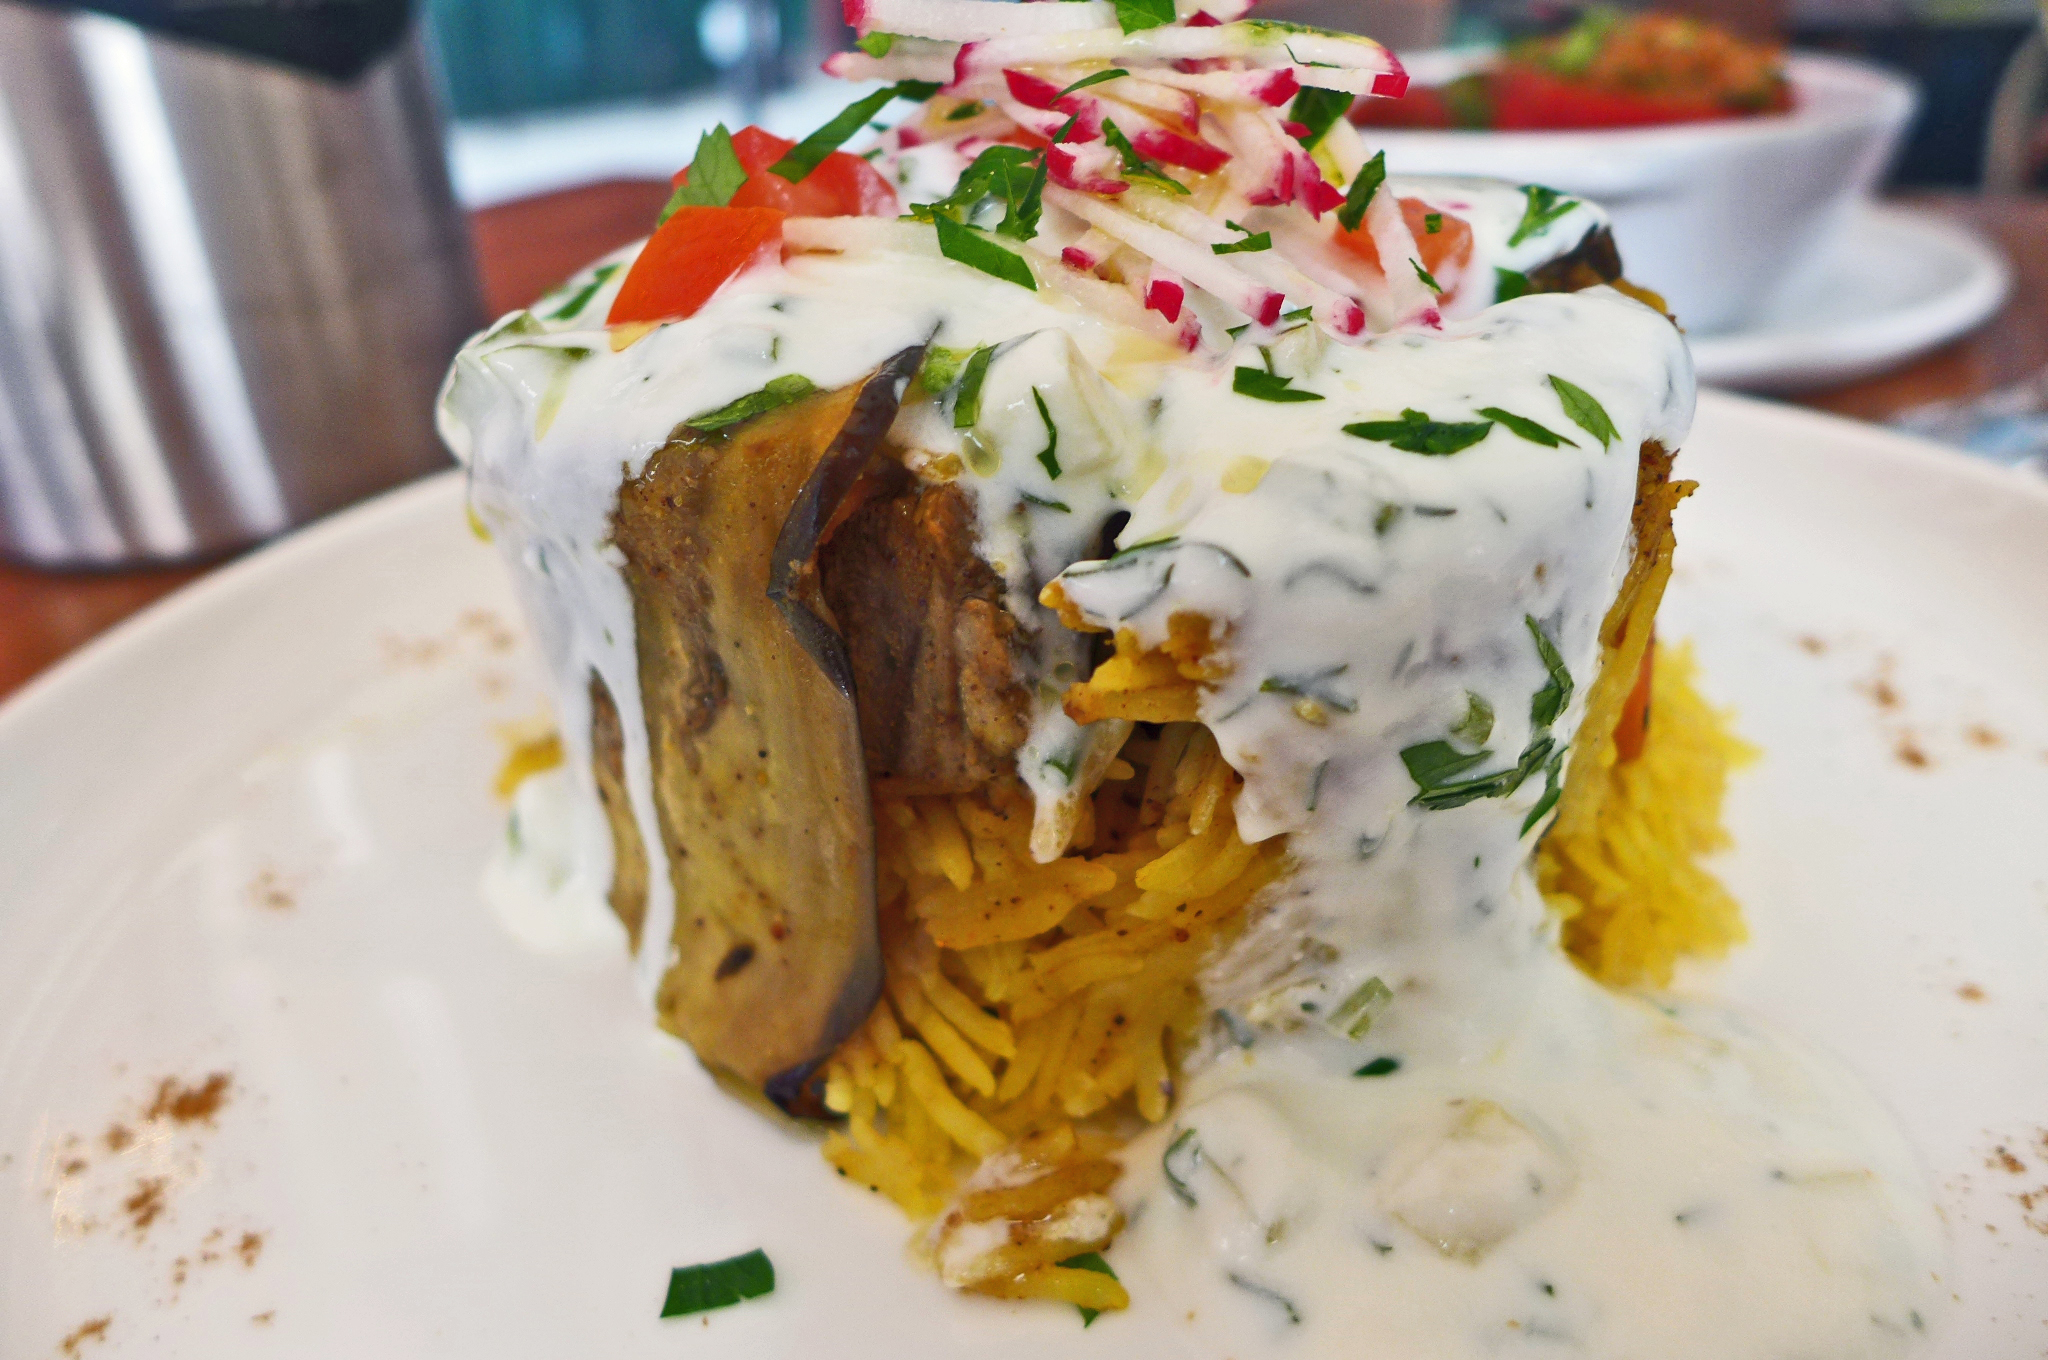 A vast mass of yellowish rice in a cone with white sauce flowing over the top.